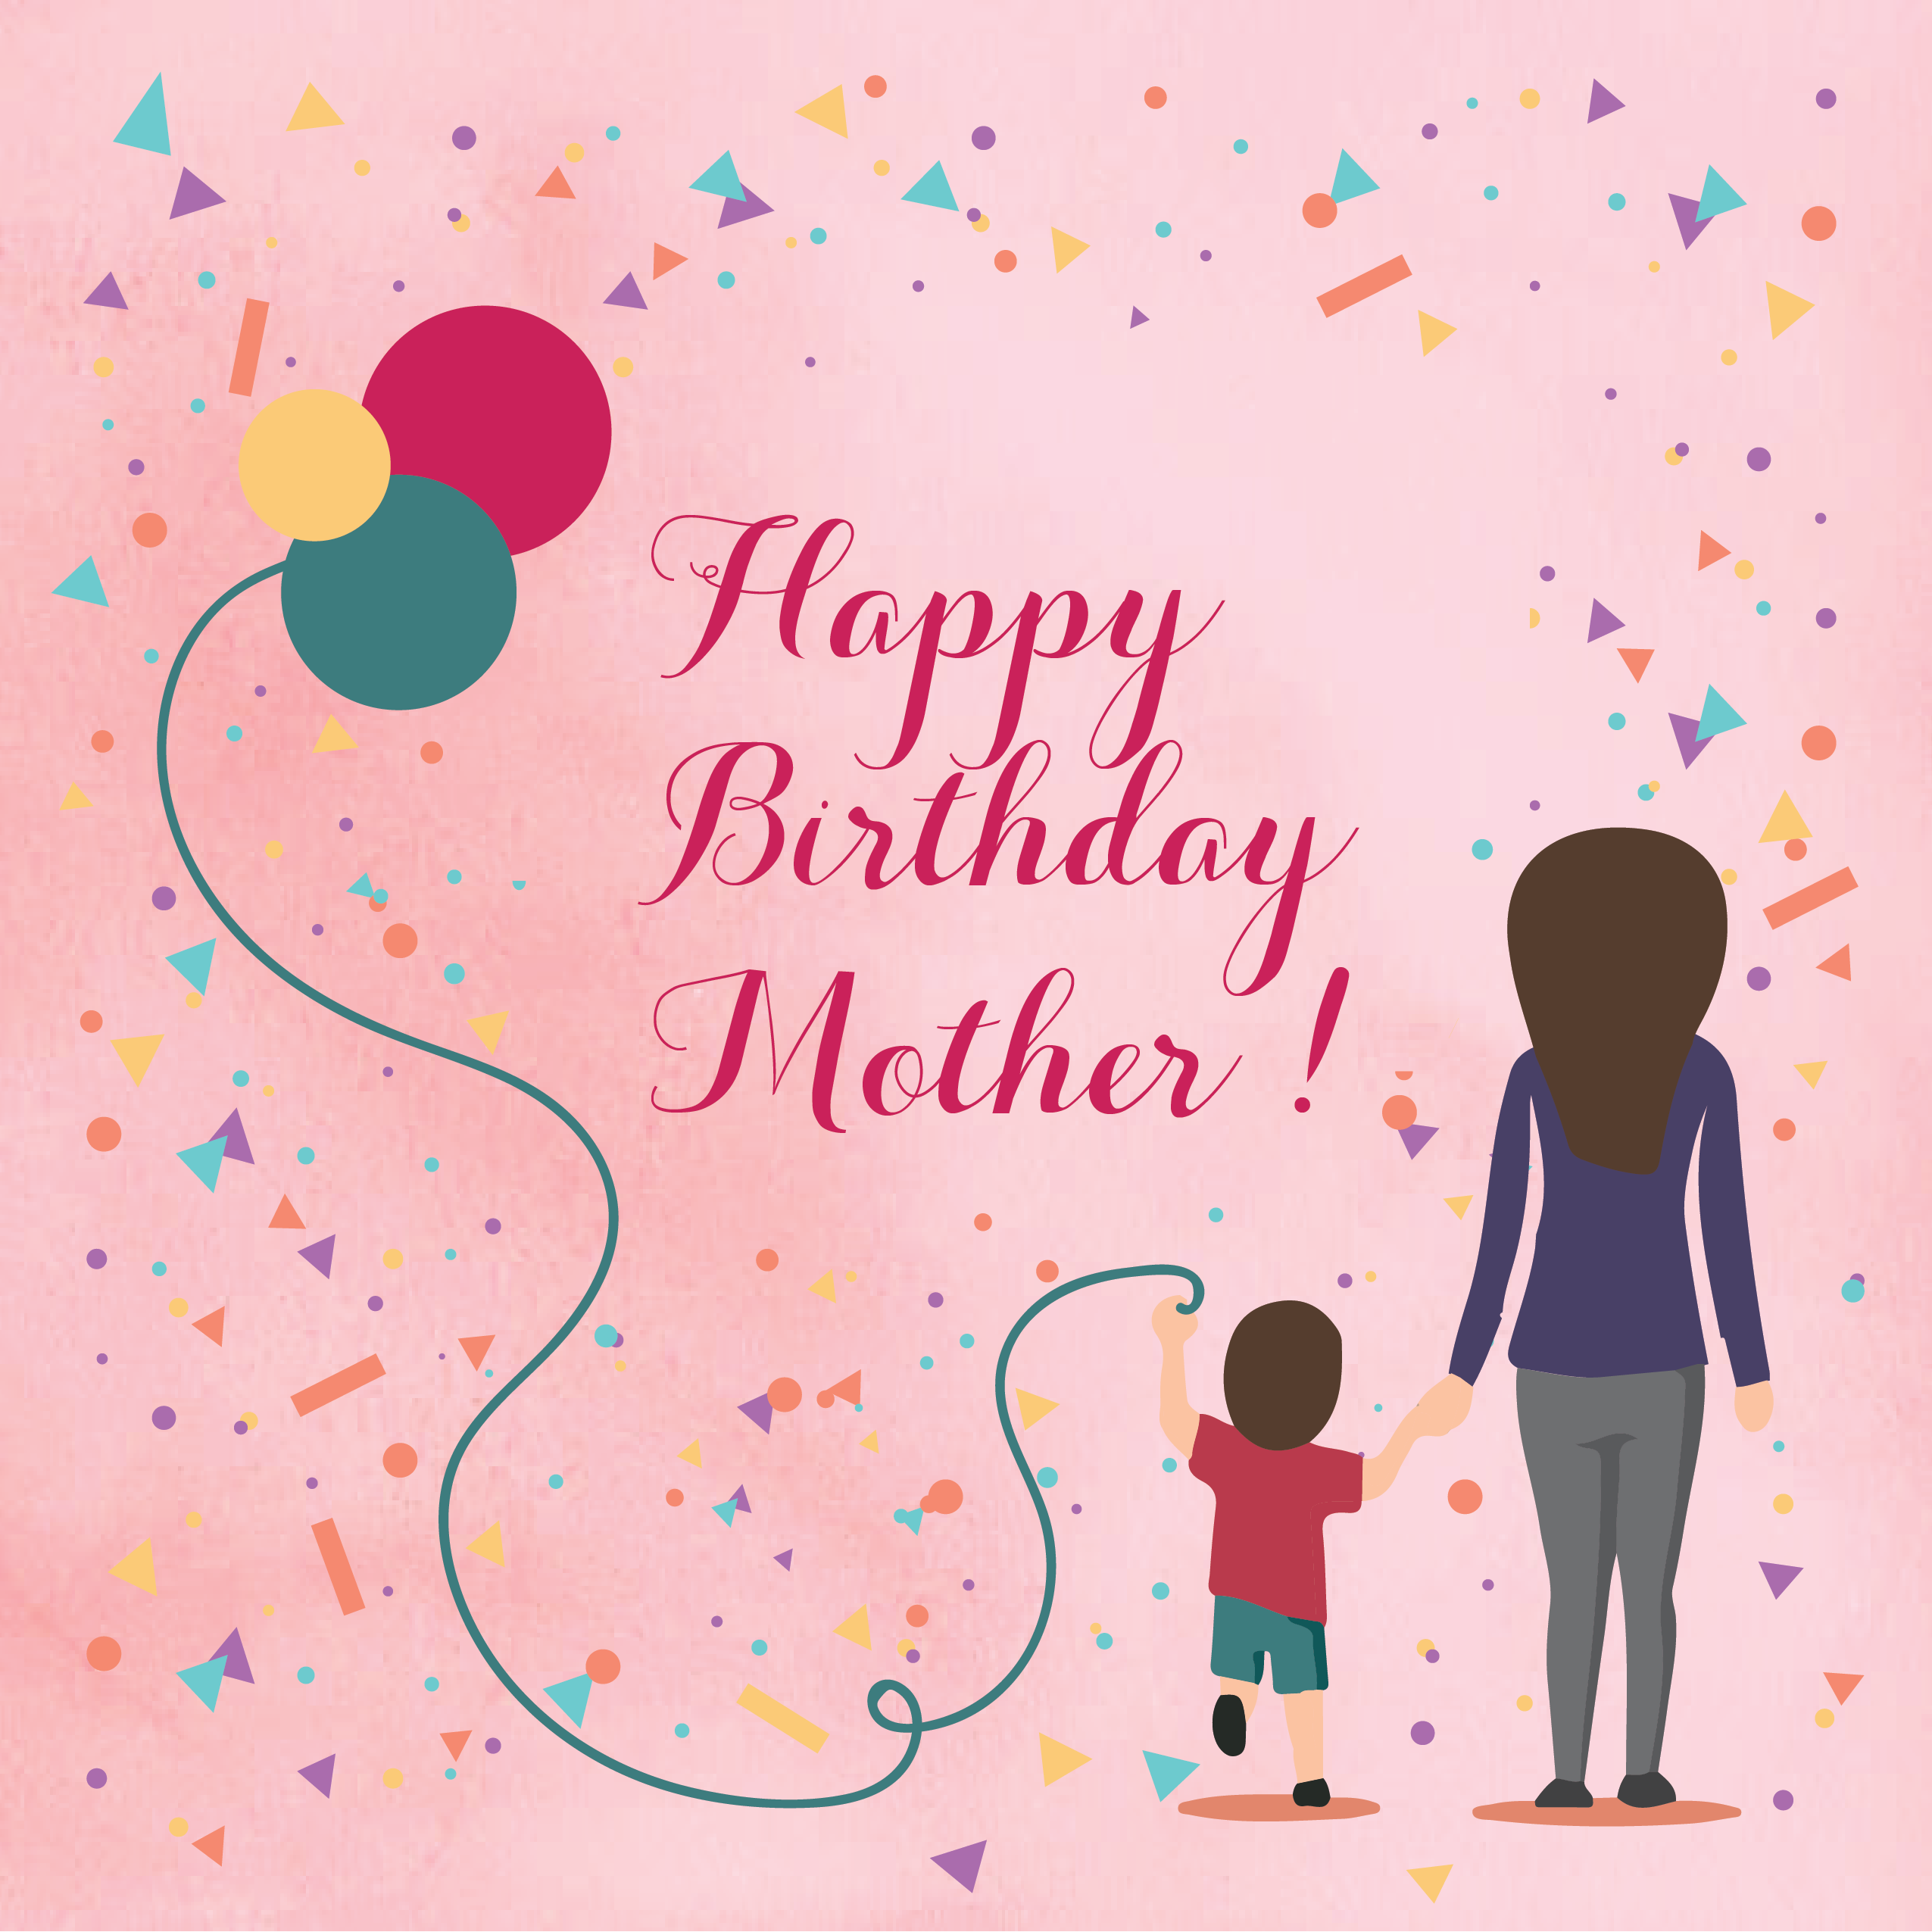 Happy-Birthday-Wishes-Mother